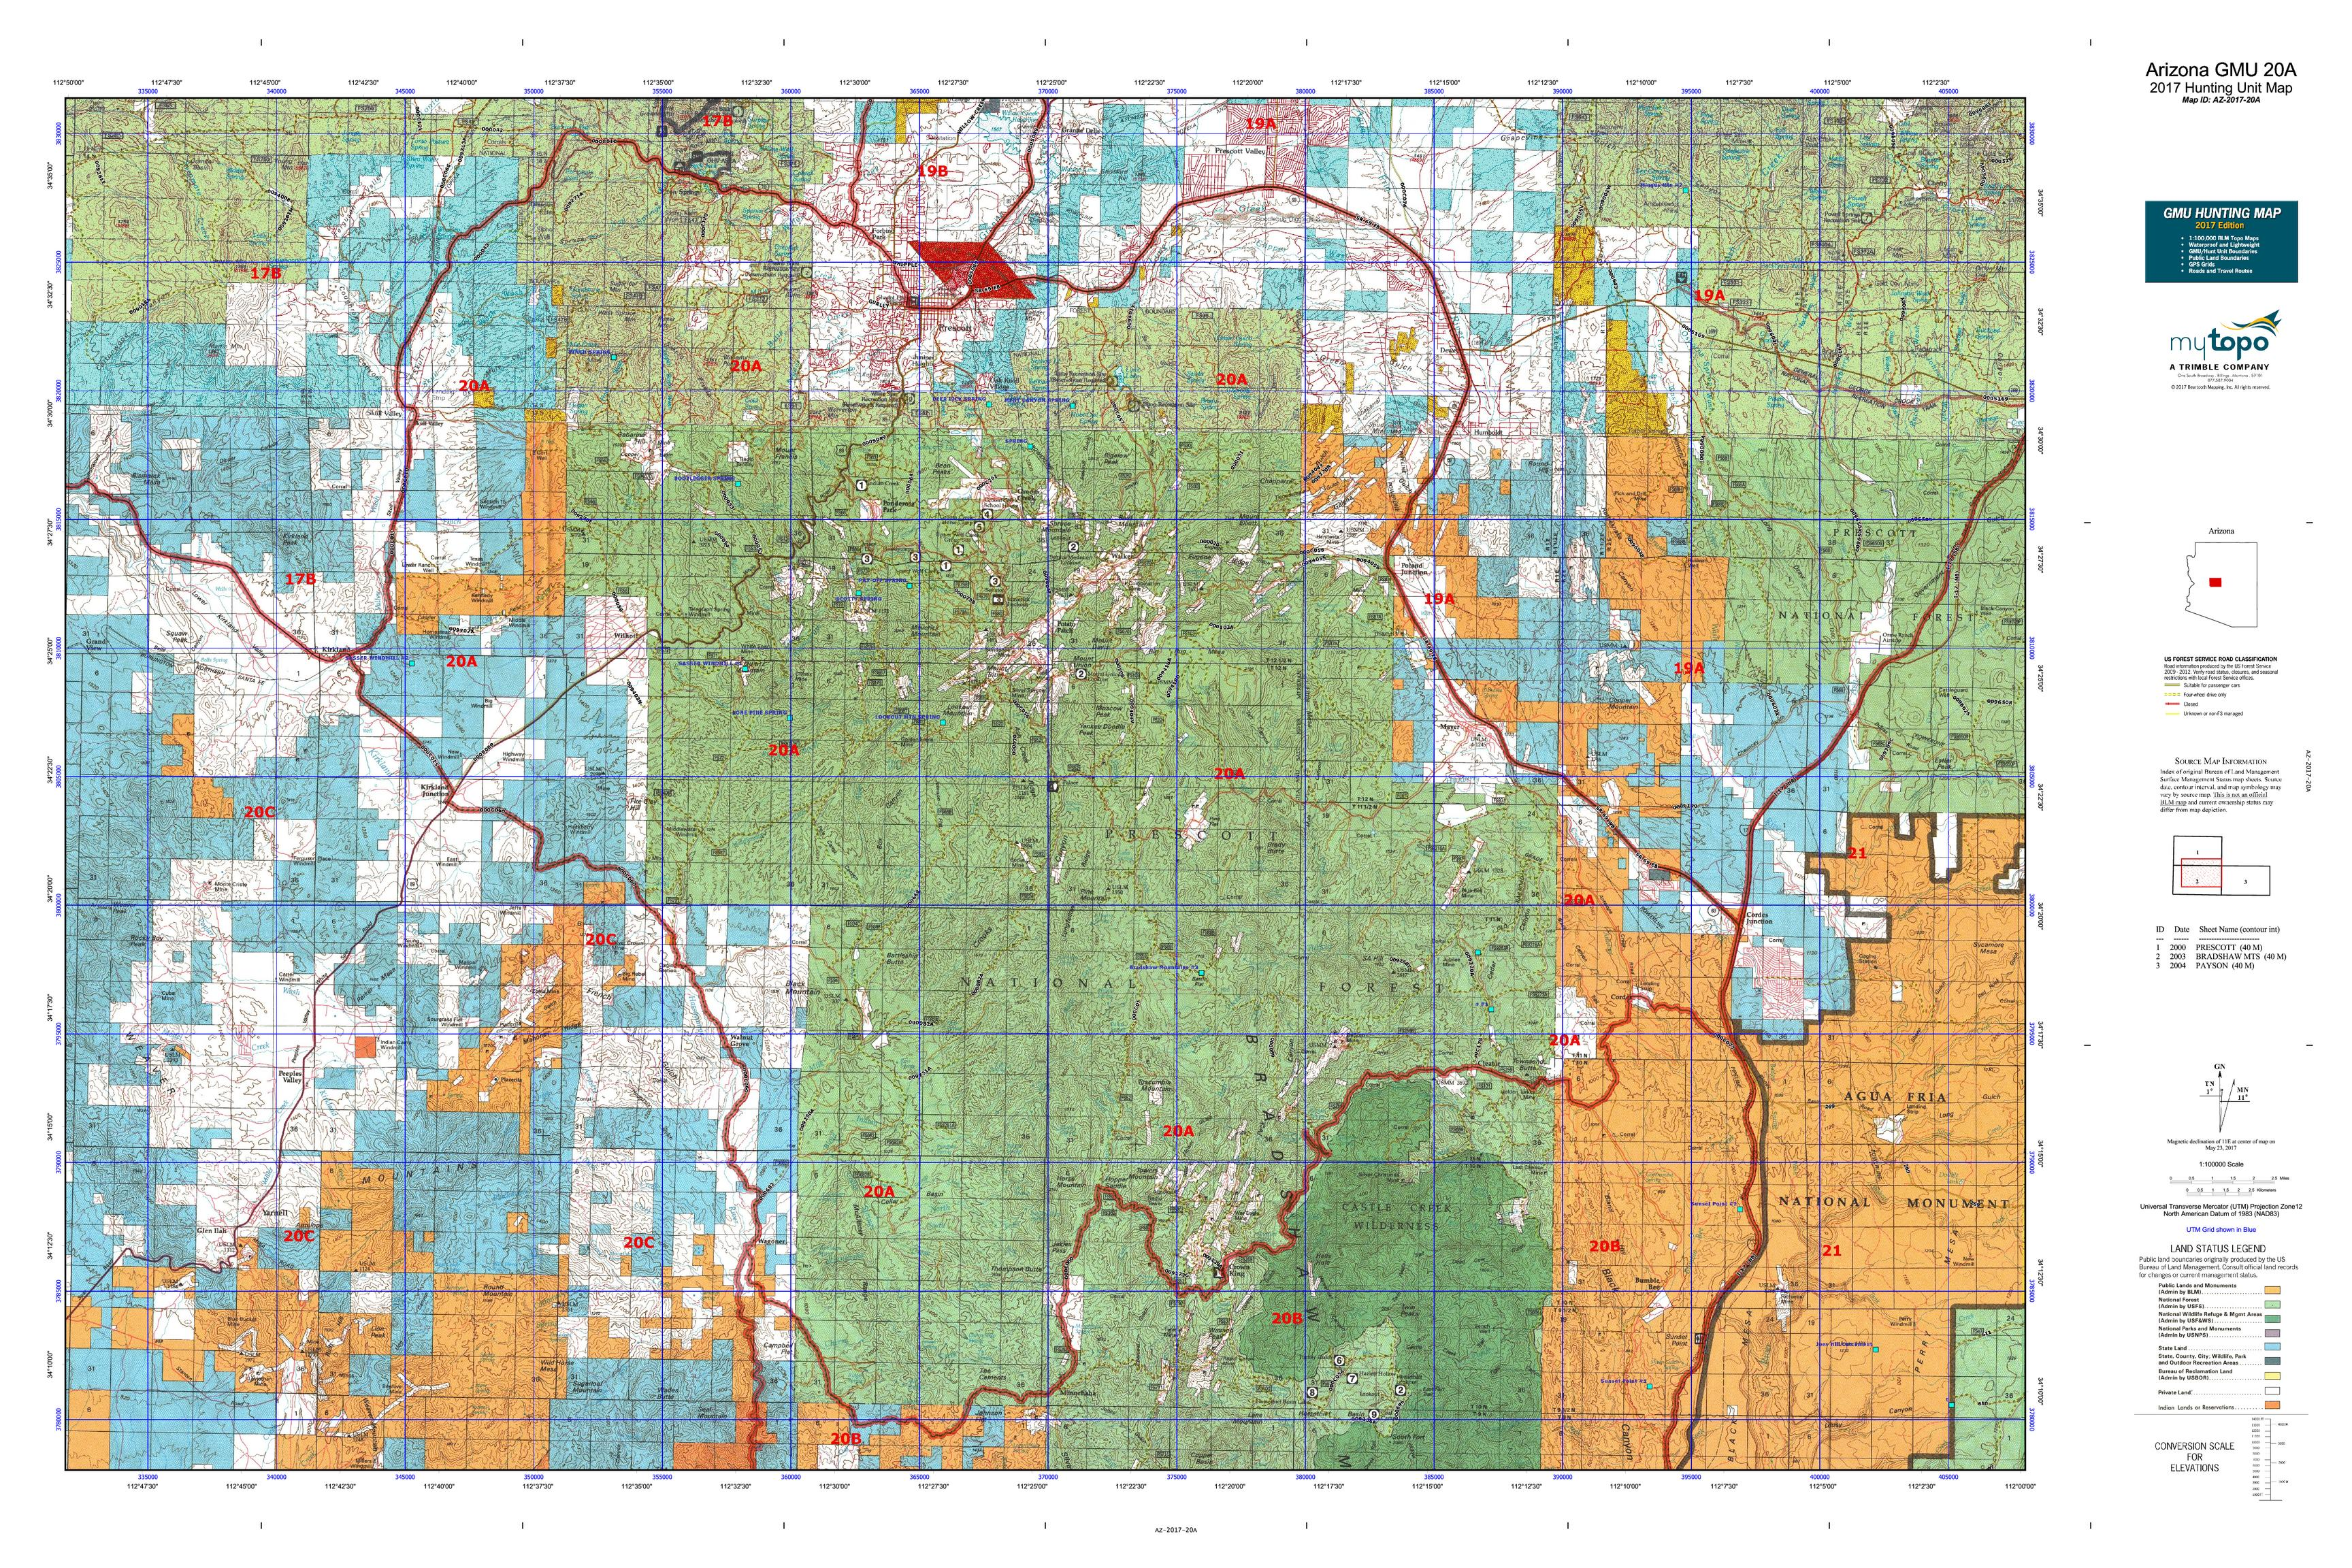 Arizona gmu 20a map mytopo for Arizona game and fish locations